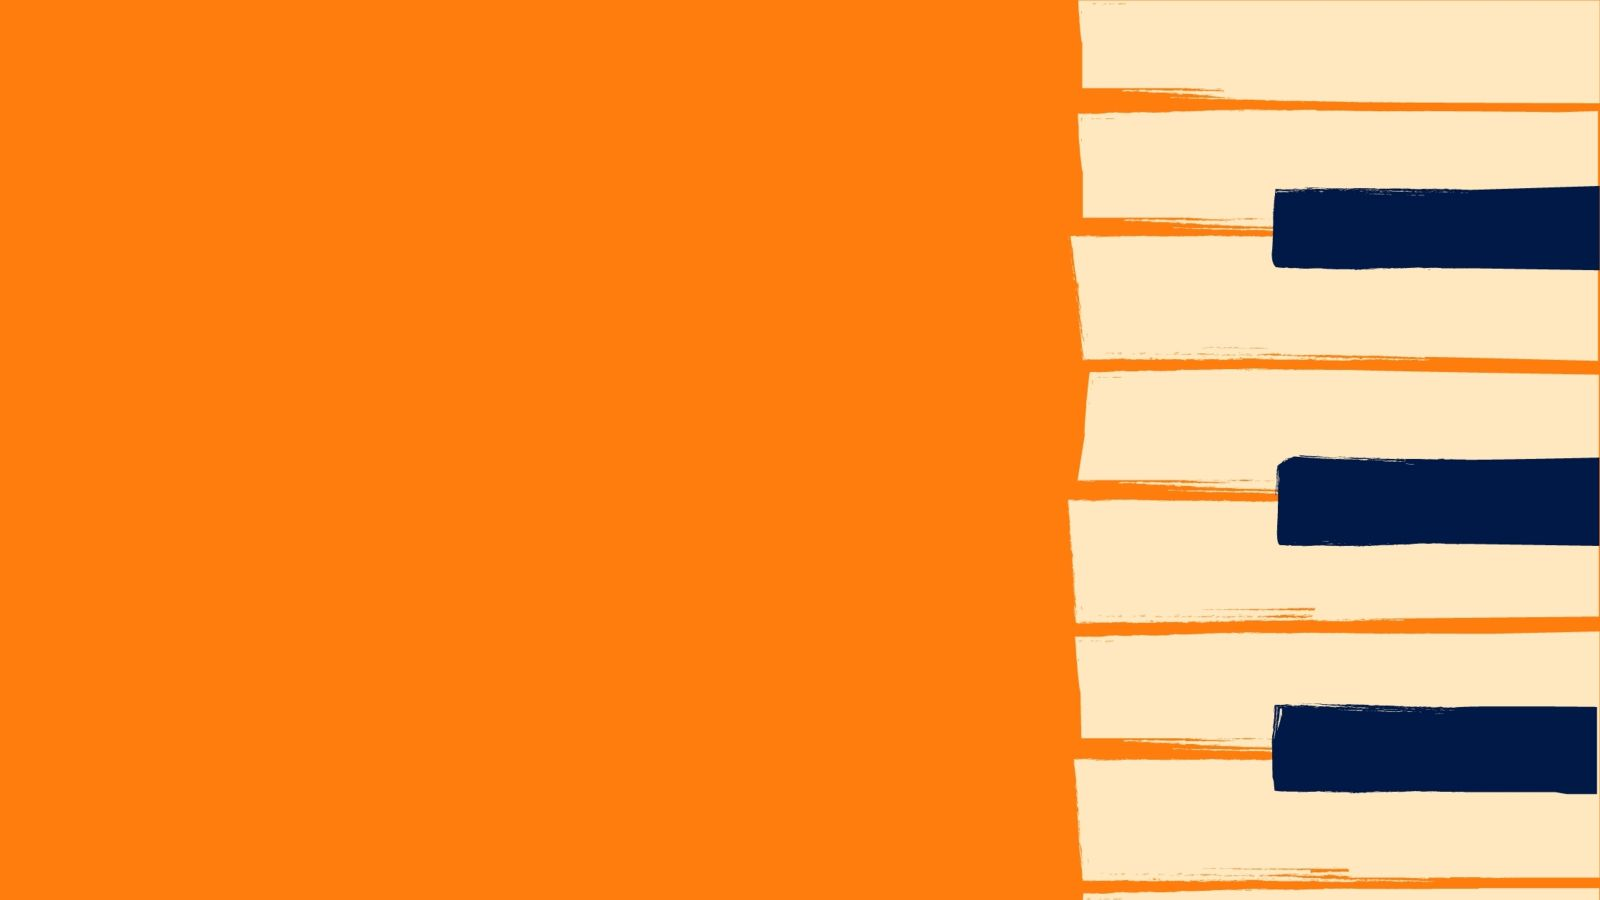 Pop art piano keys pattern on bright orange background